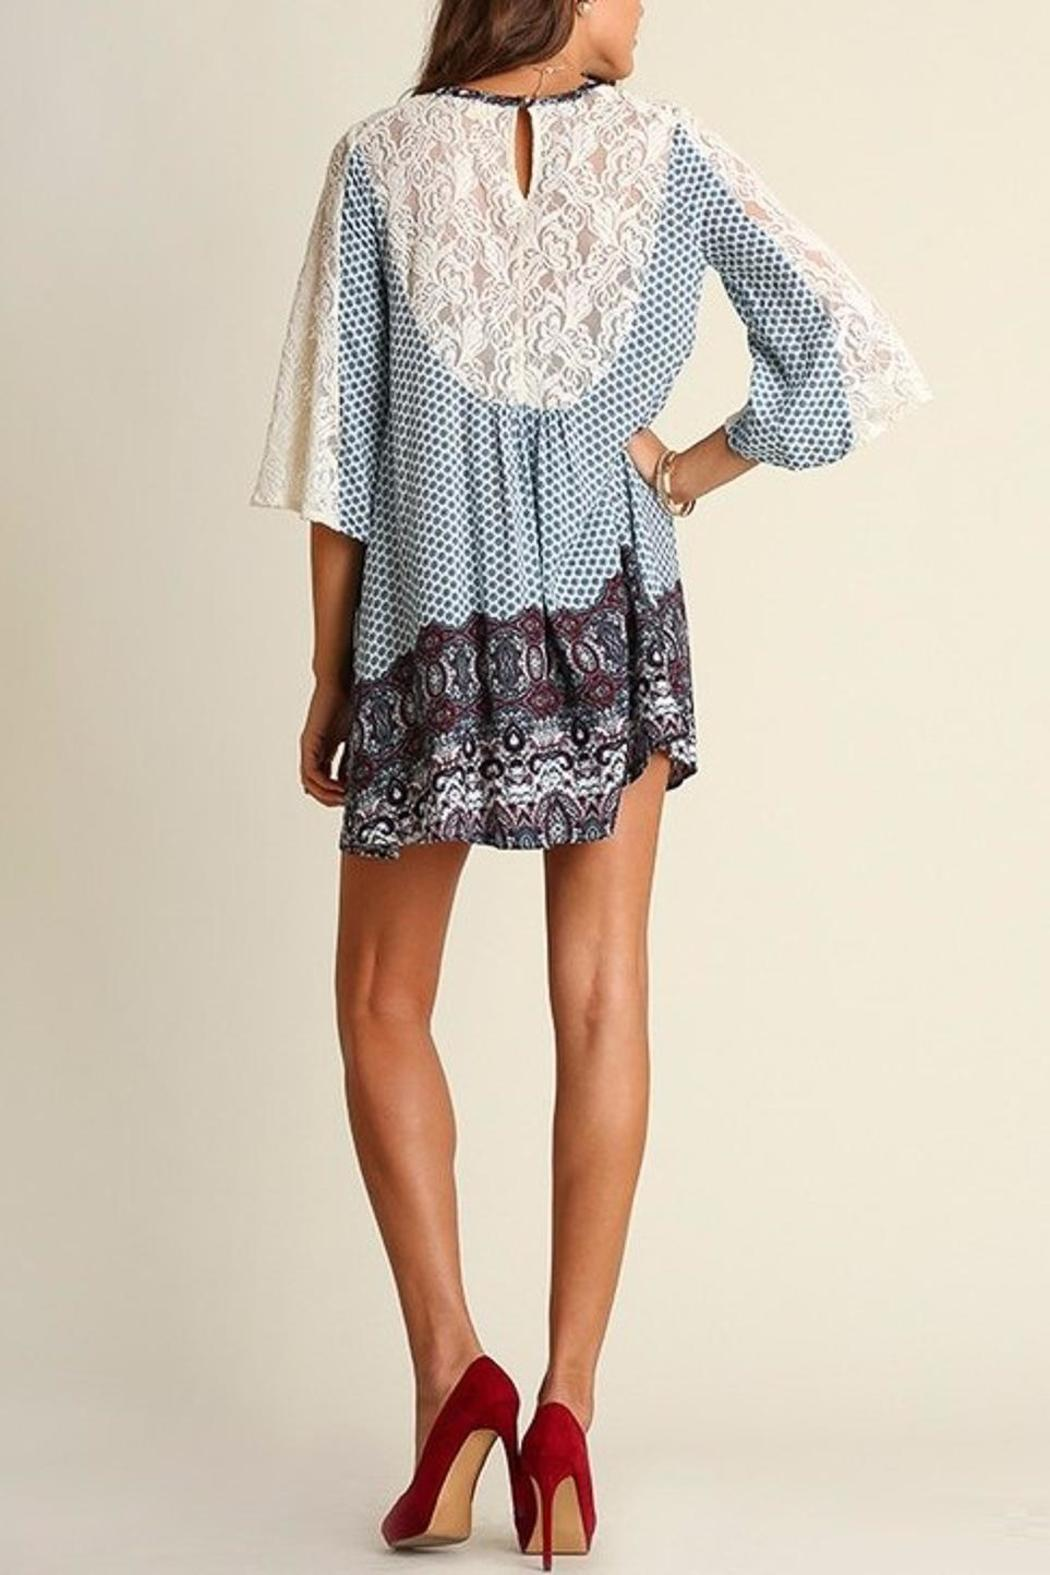 People Outfitter Camilla Blue Dress - Front Full Image